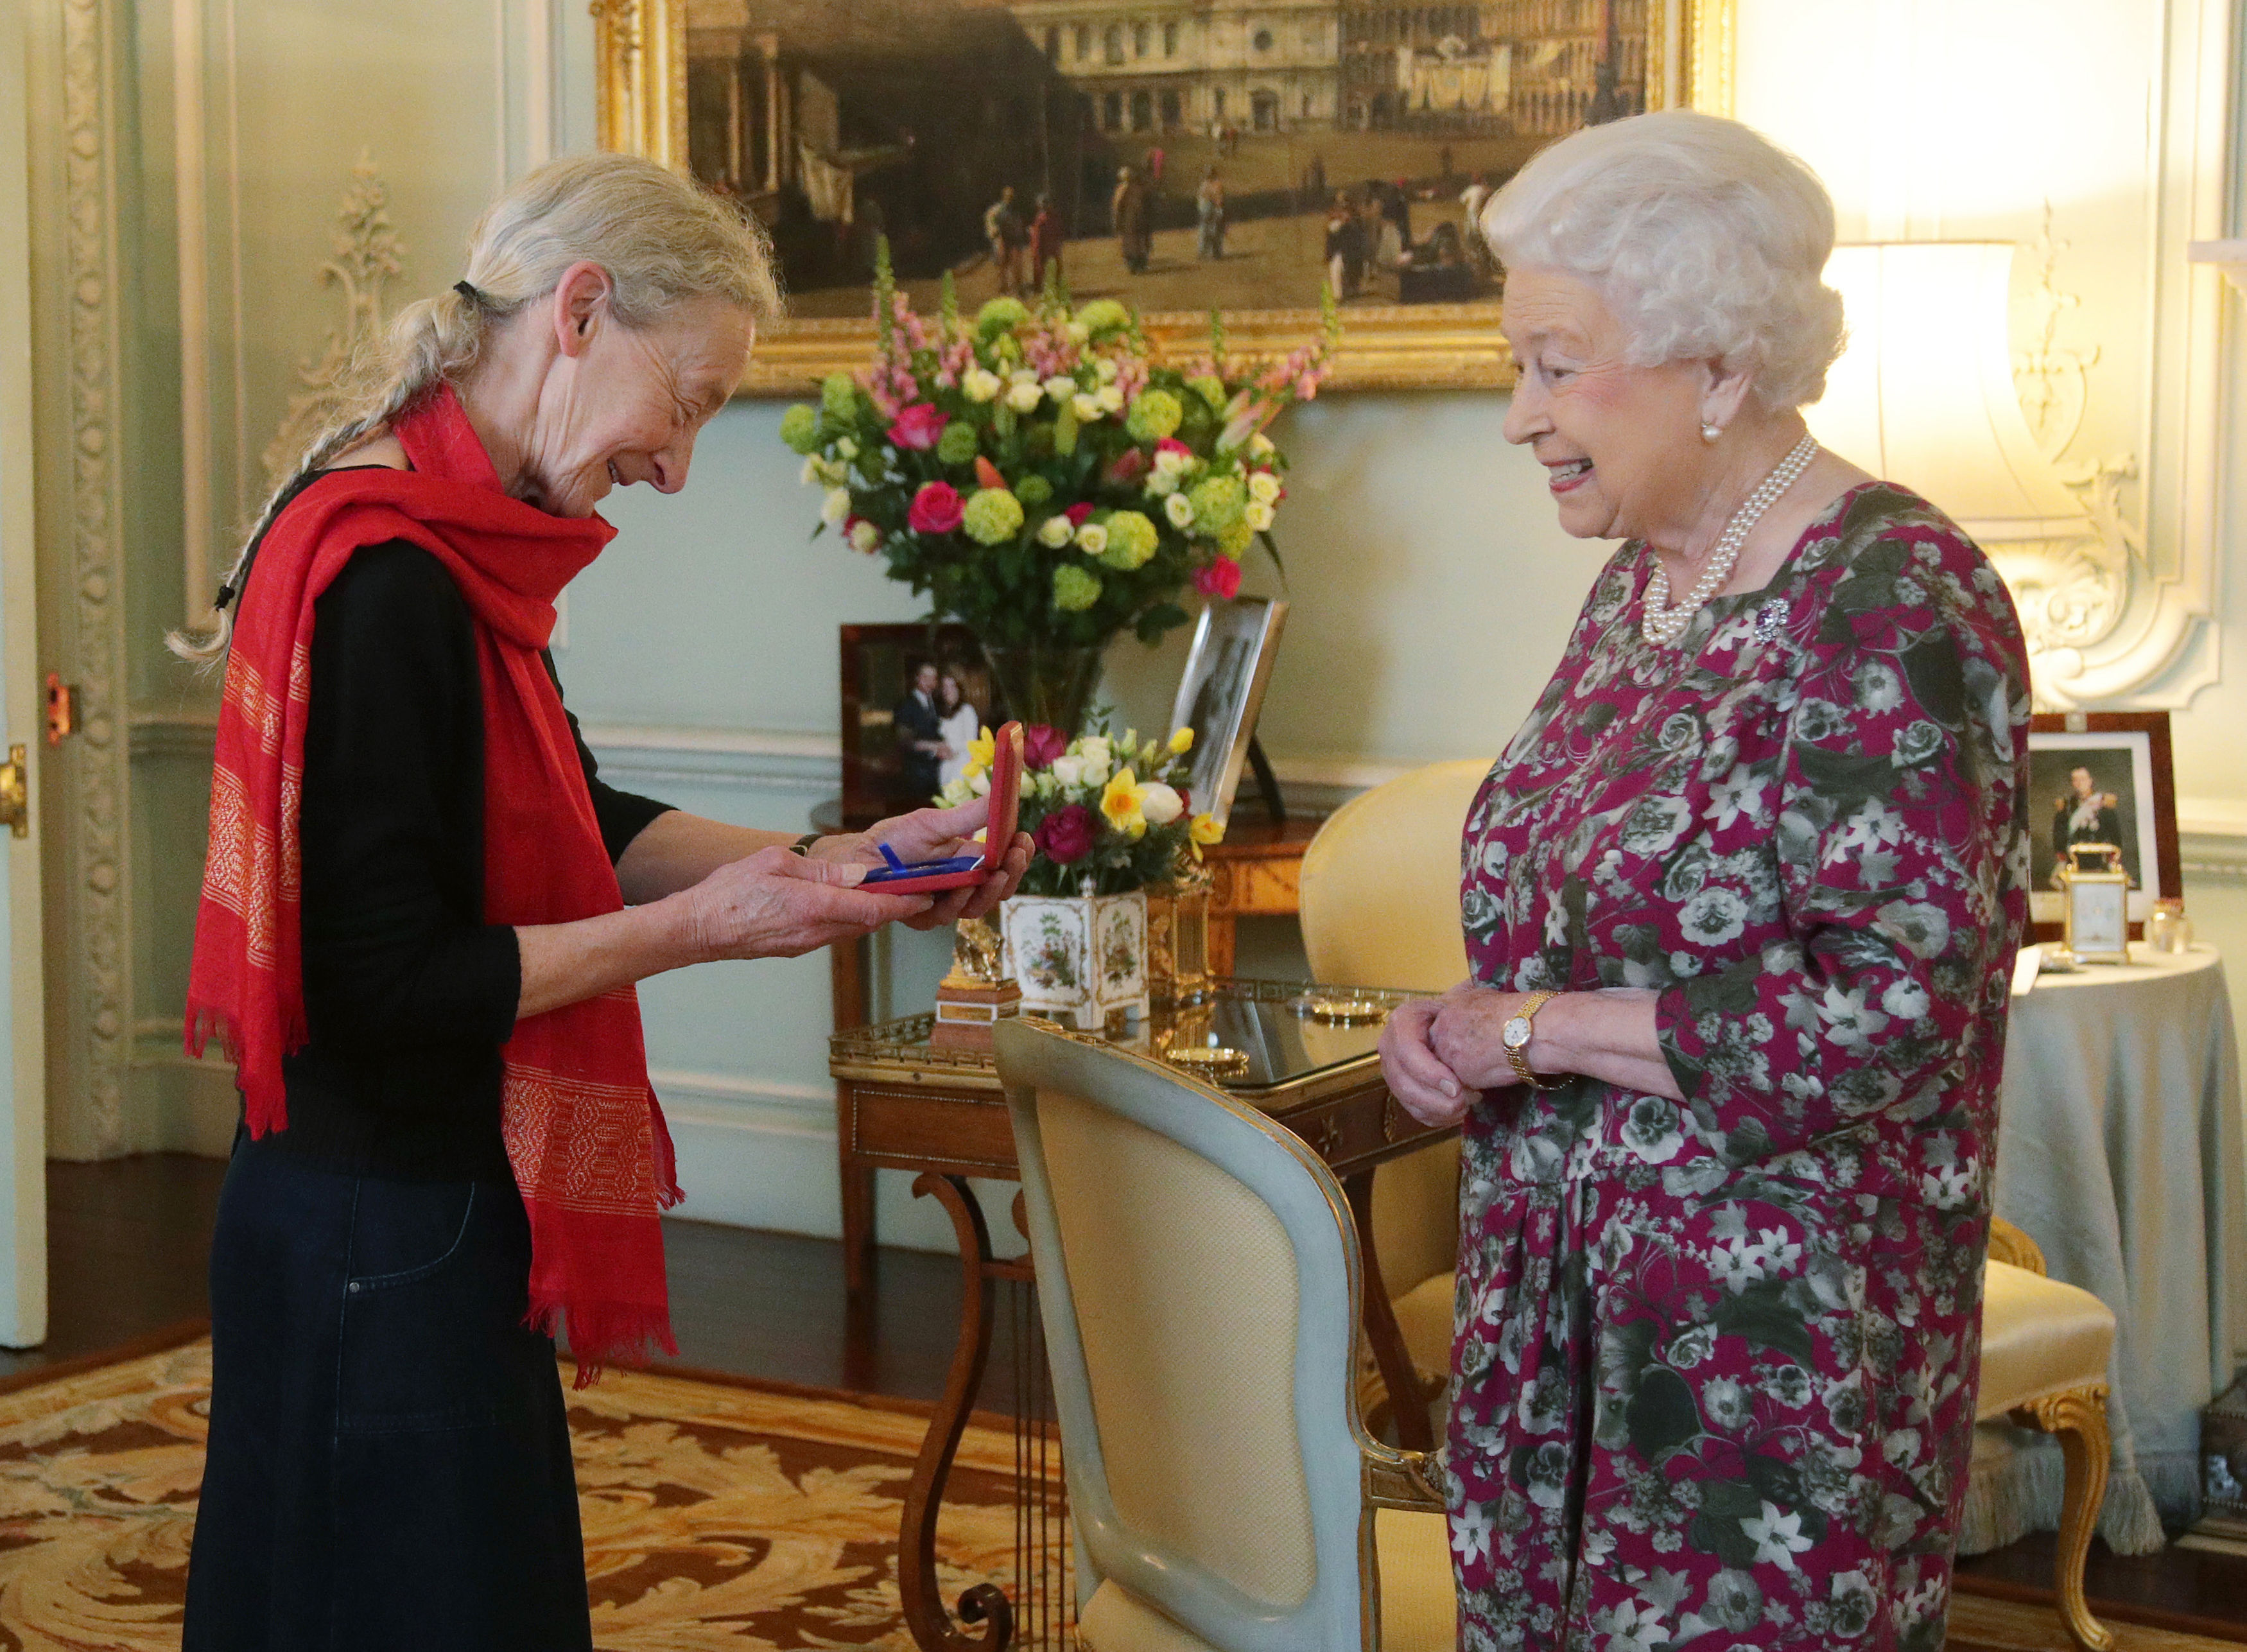 Gillian Allnutt is presented with The Queen's Gold Medal for Poetry by Queen Elizabeth II at Buckingham Palace, London.